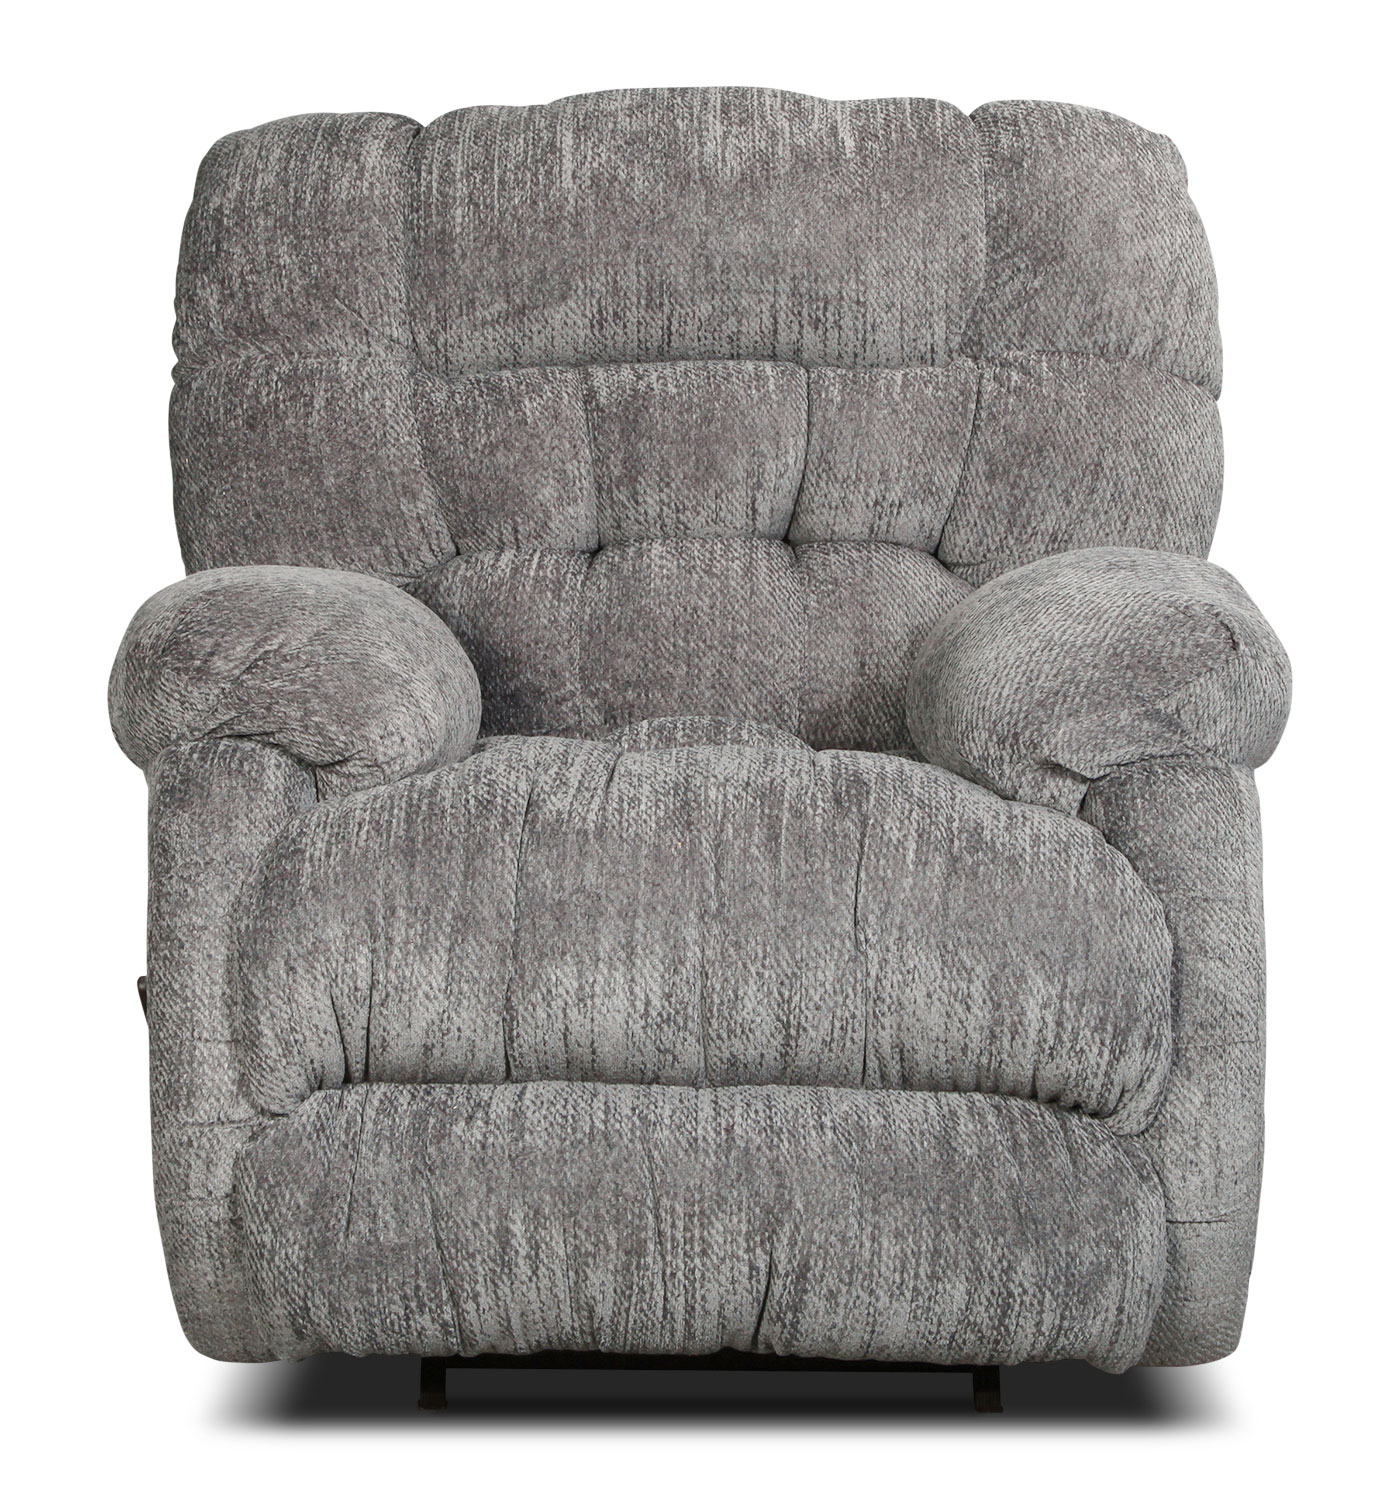 Recliners & Rockers | Levin Furniture